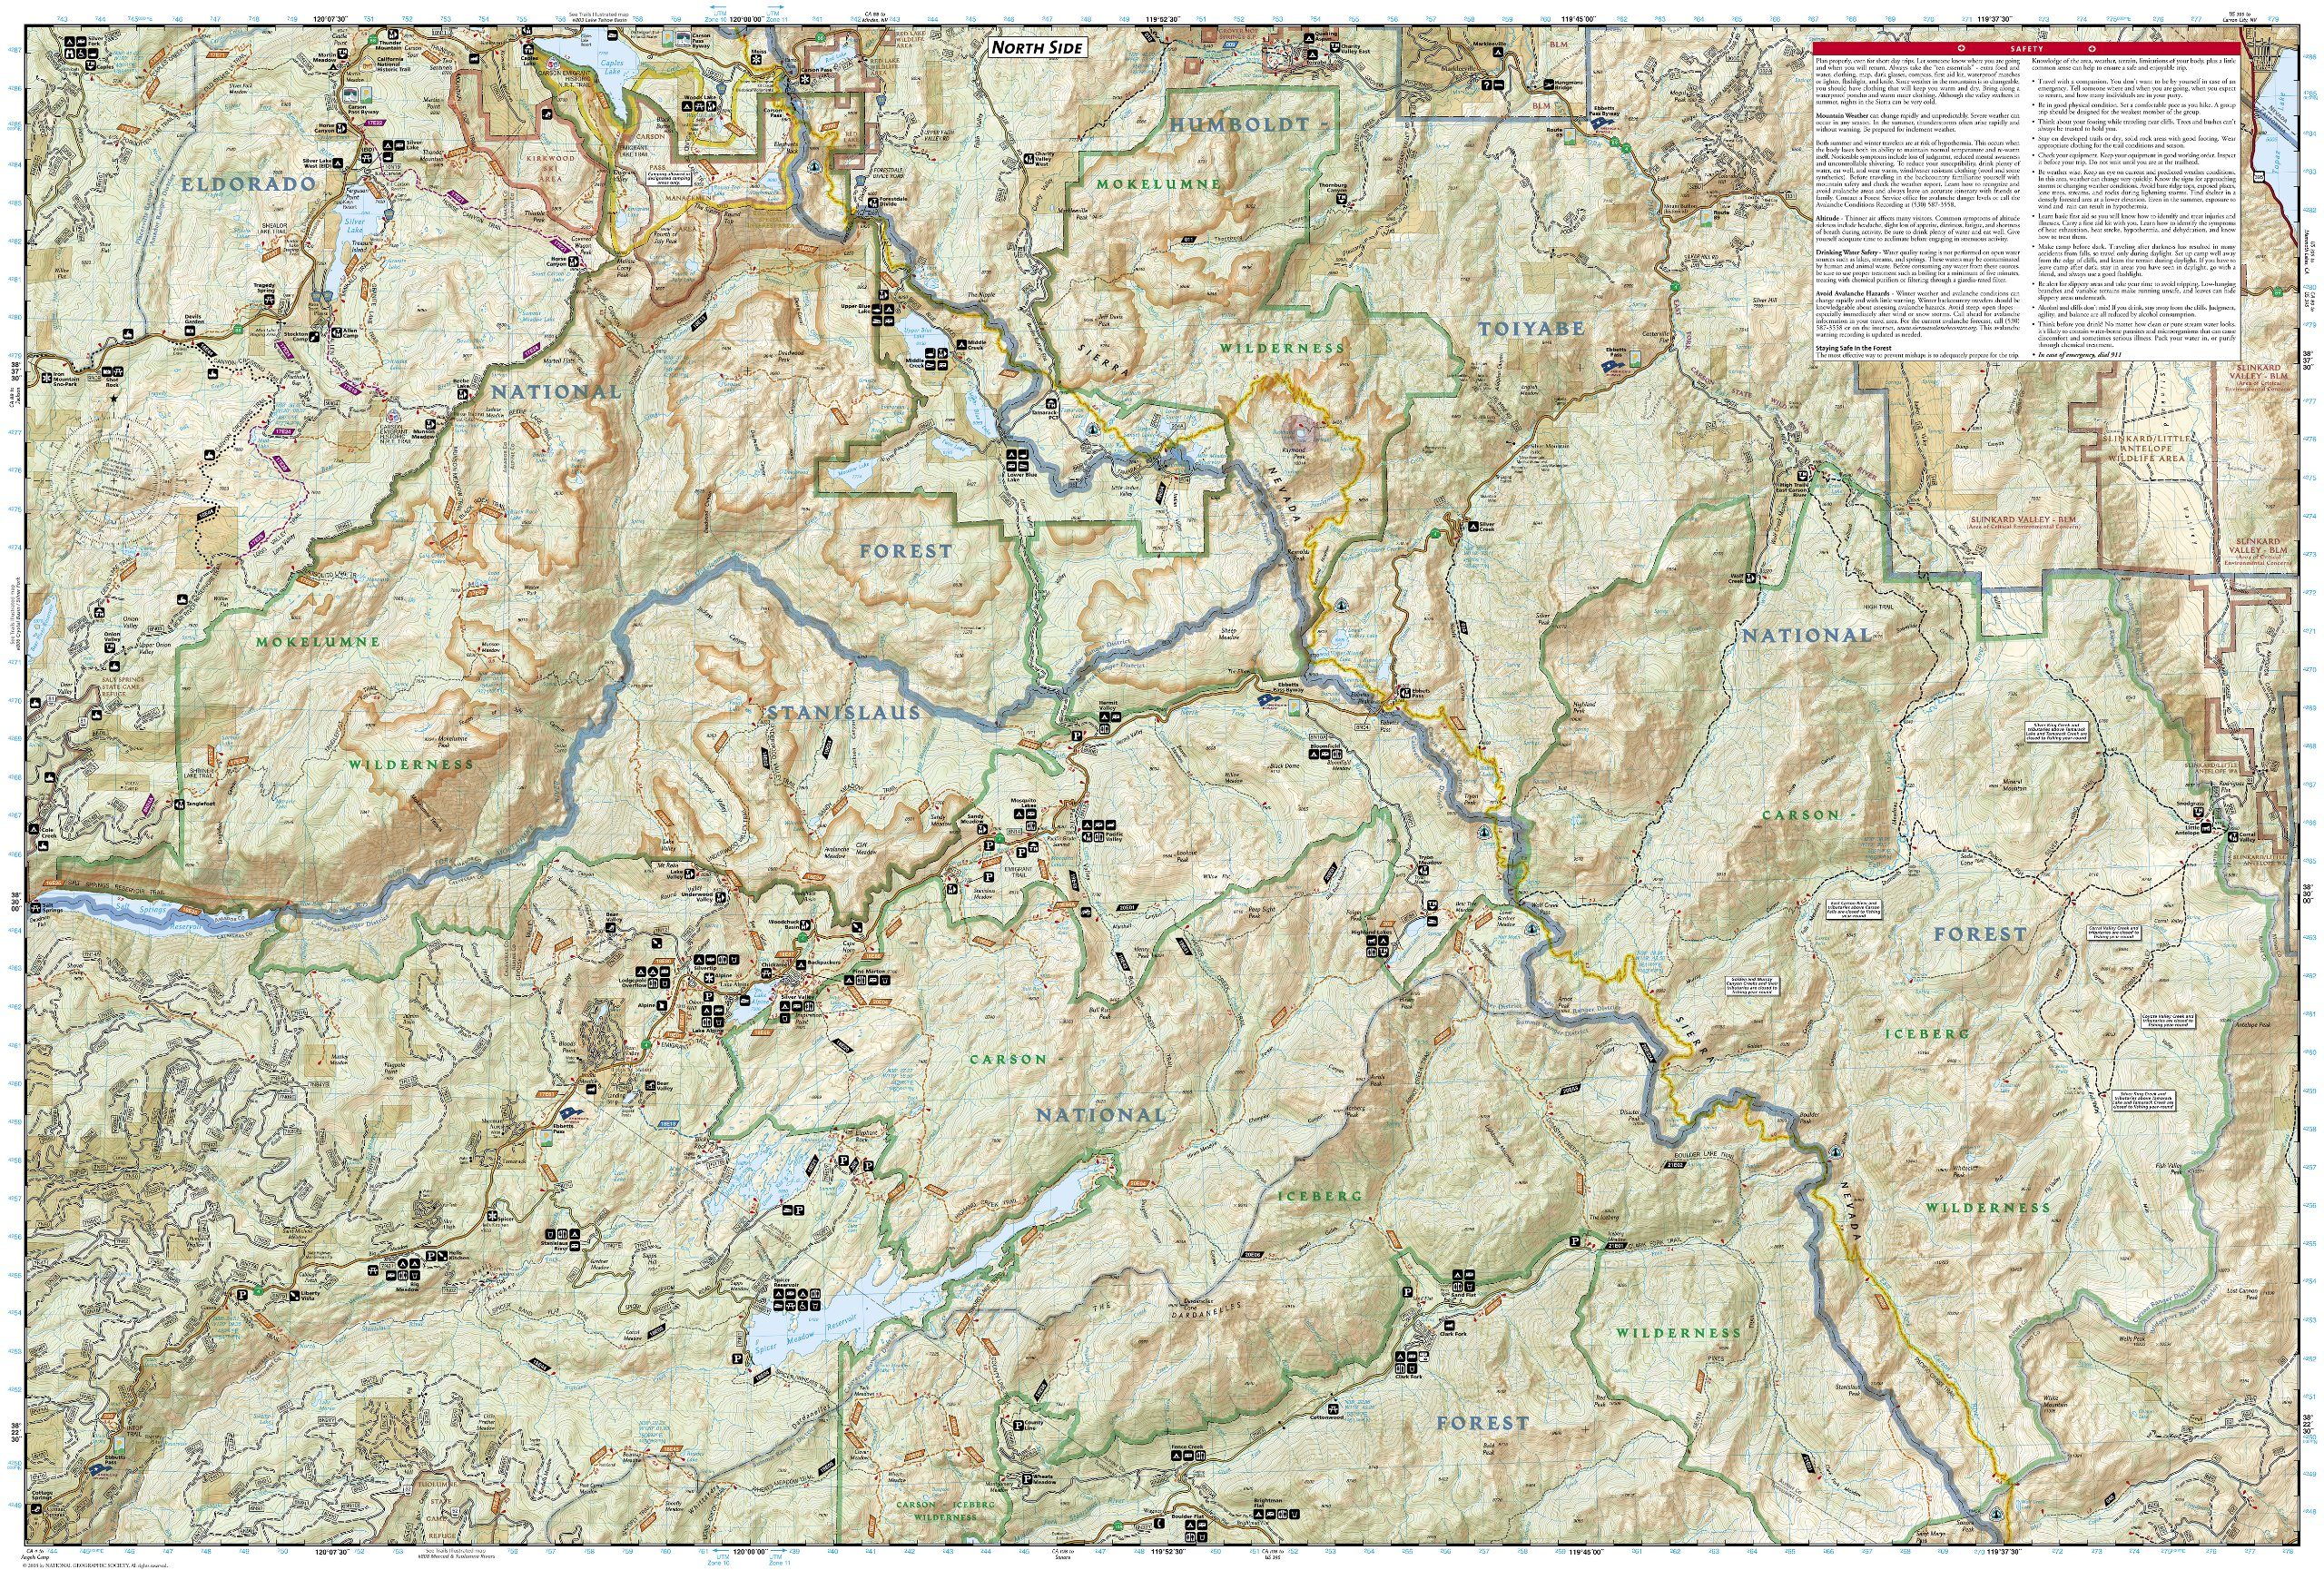 Carson-Iceberg, Emigrant, and Mokelumne Wilderness Areas [Eldorado ...